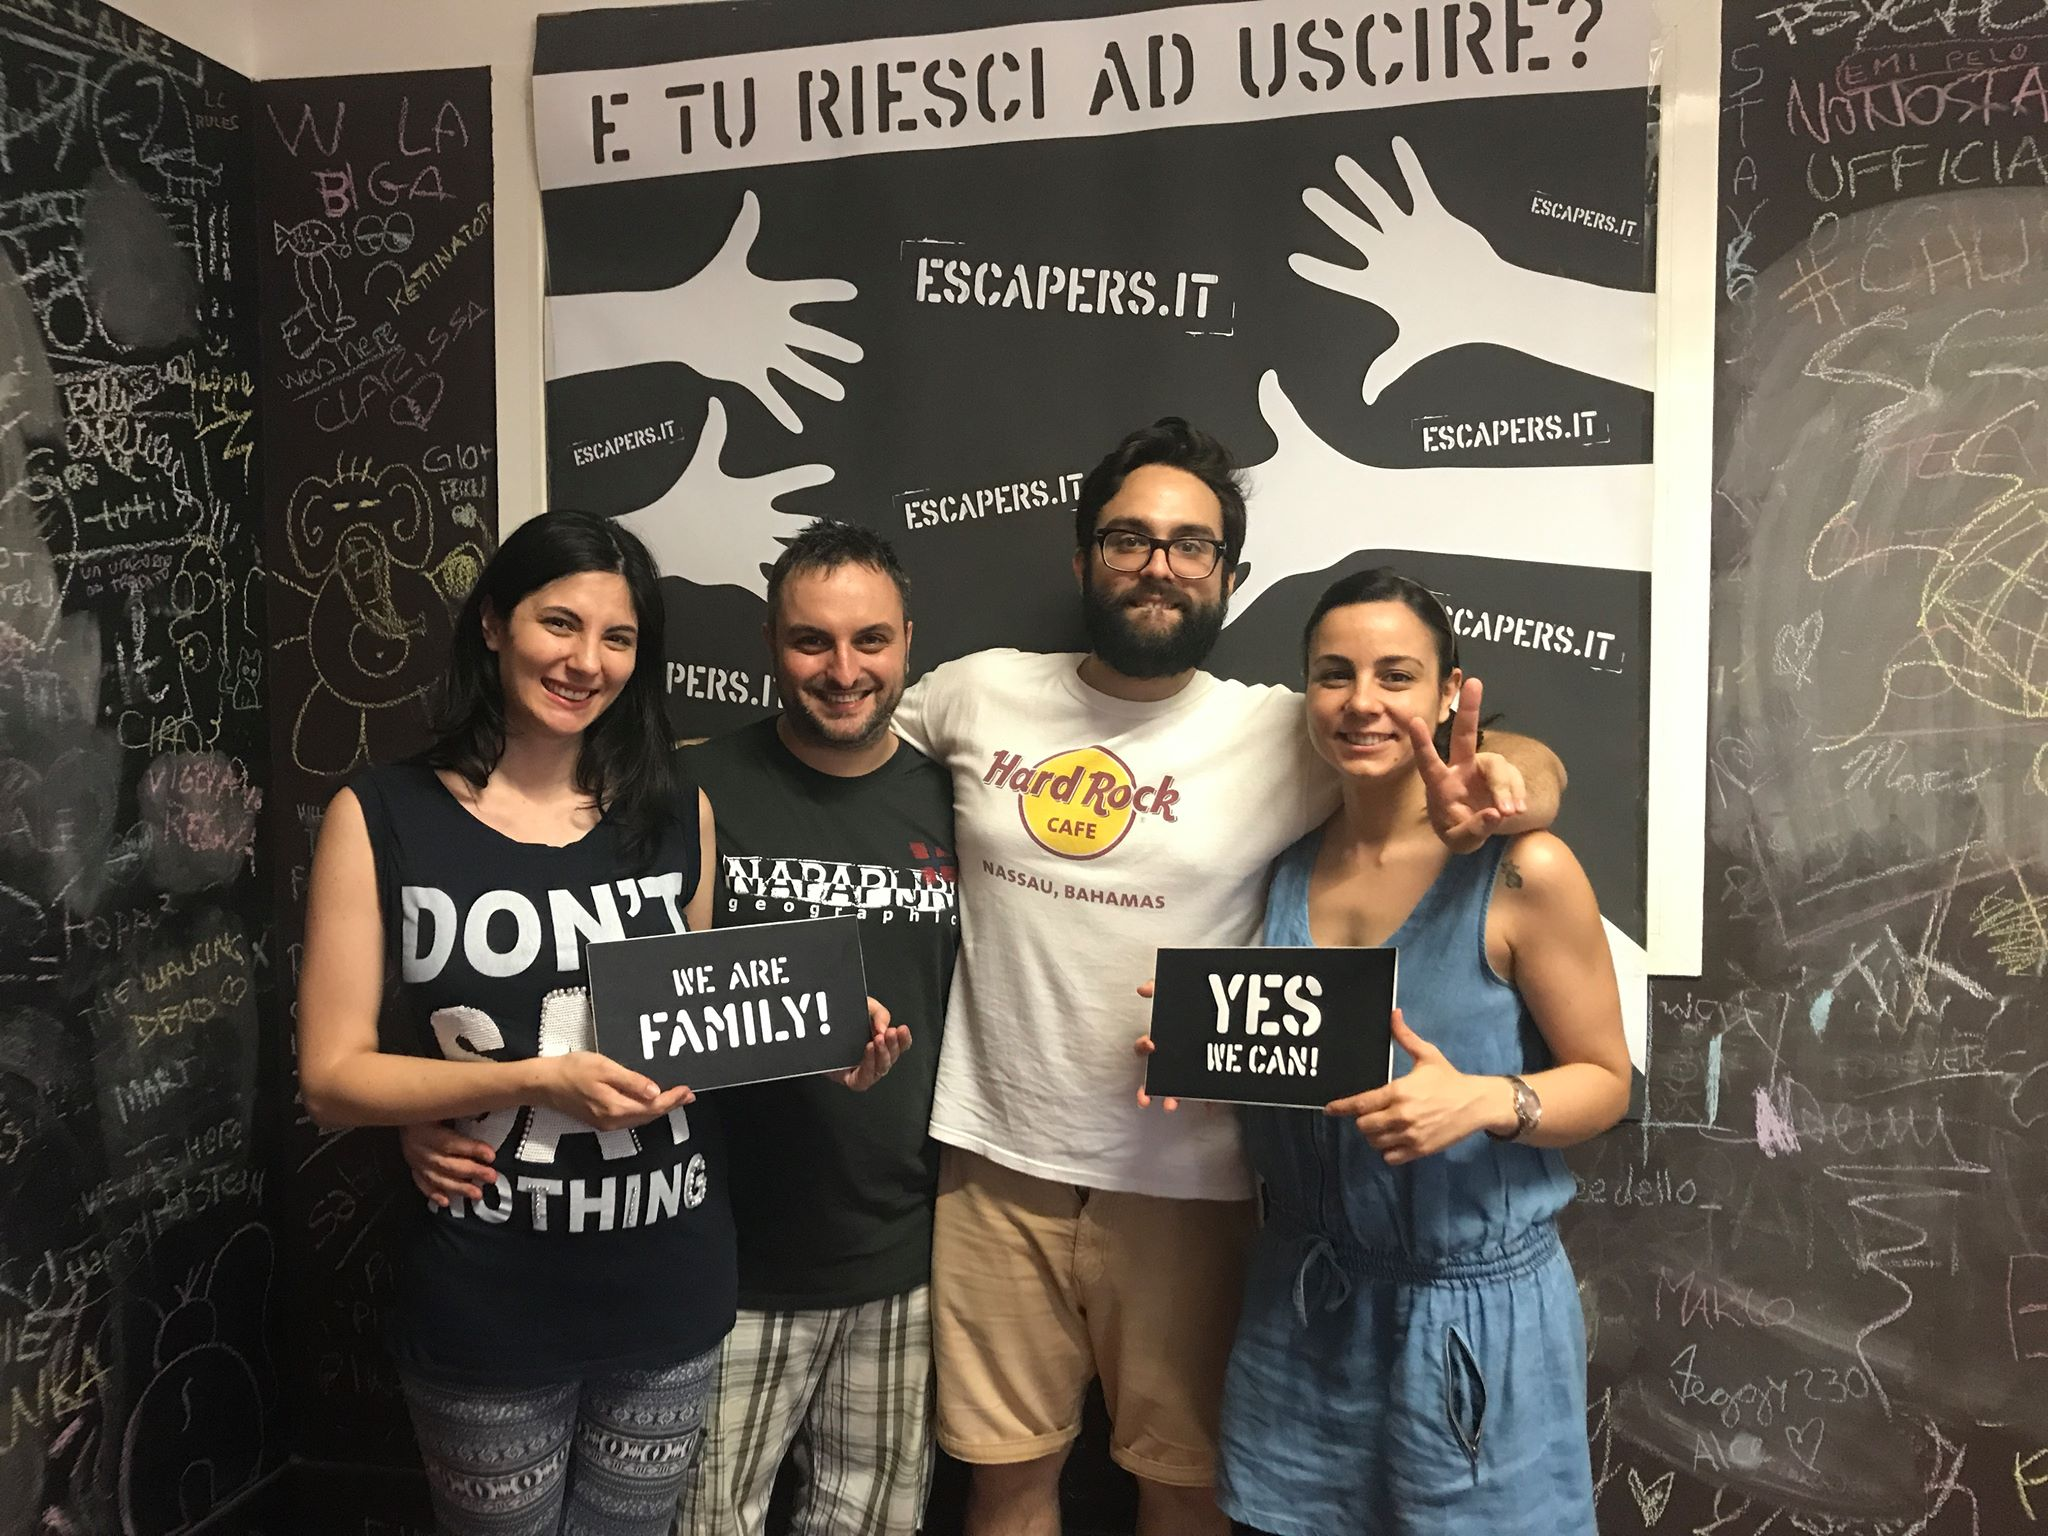 3-Escapers-escape-room-milano-la-prigione-classifica-last-minute.jpg